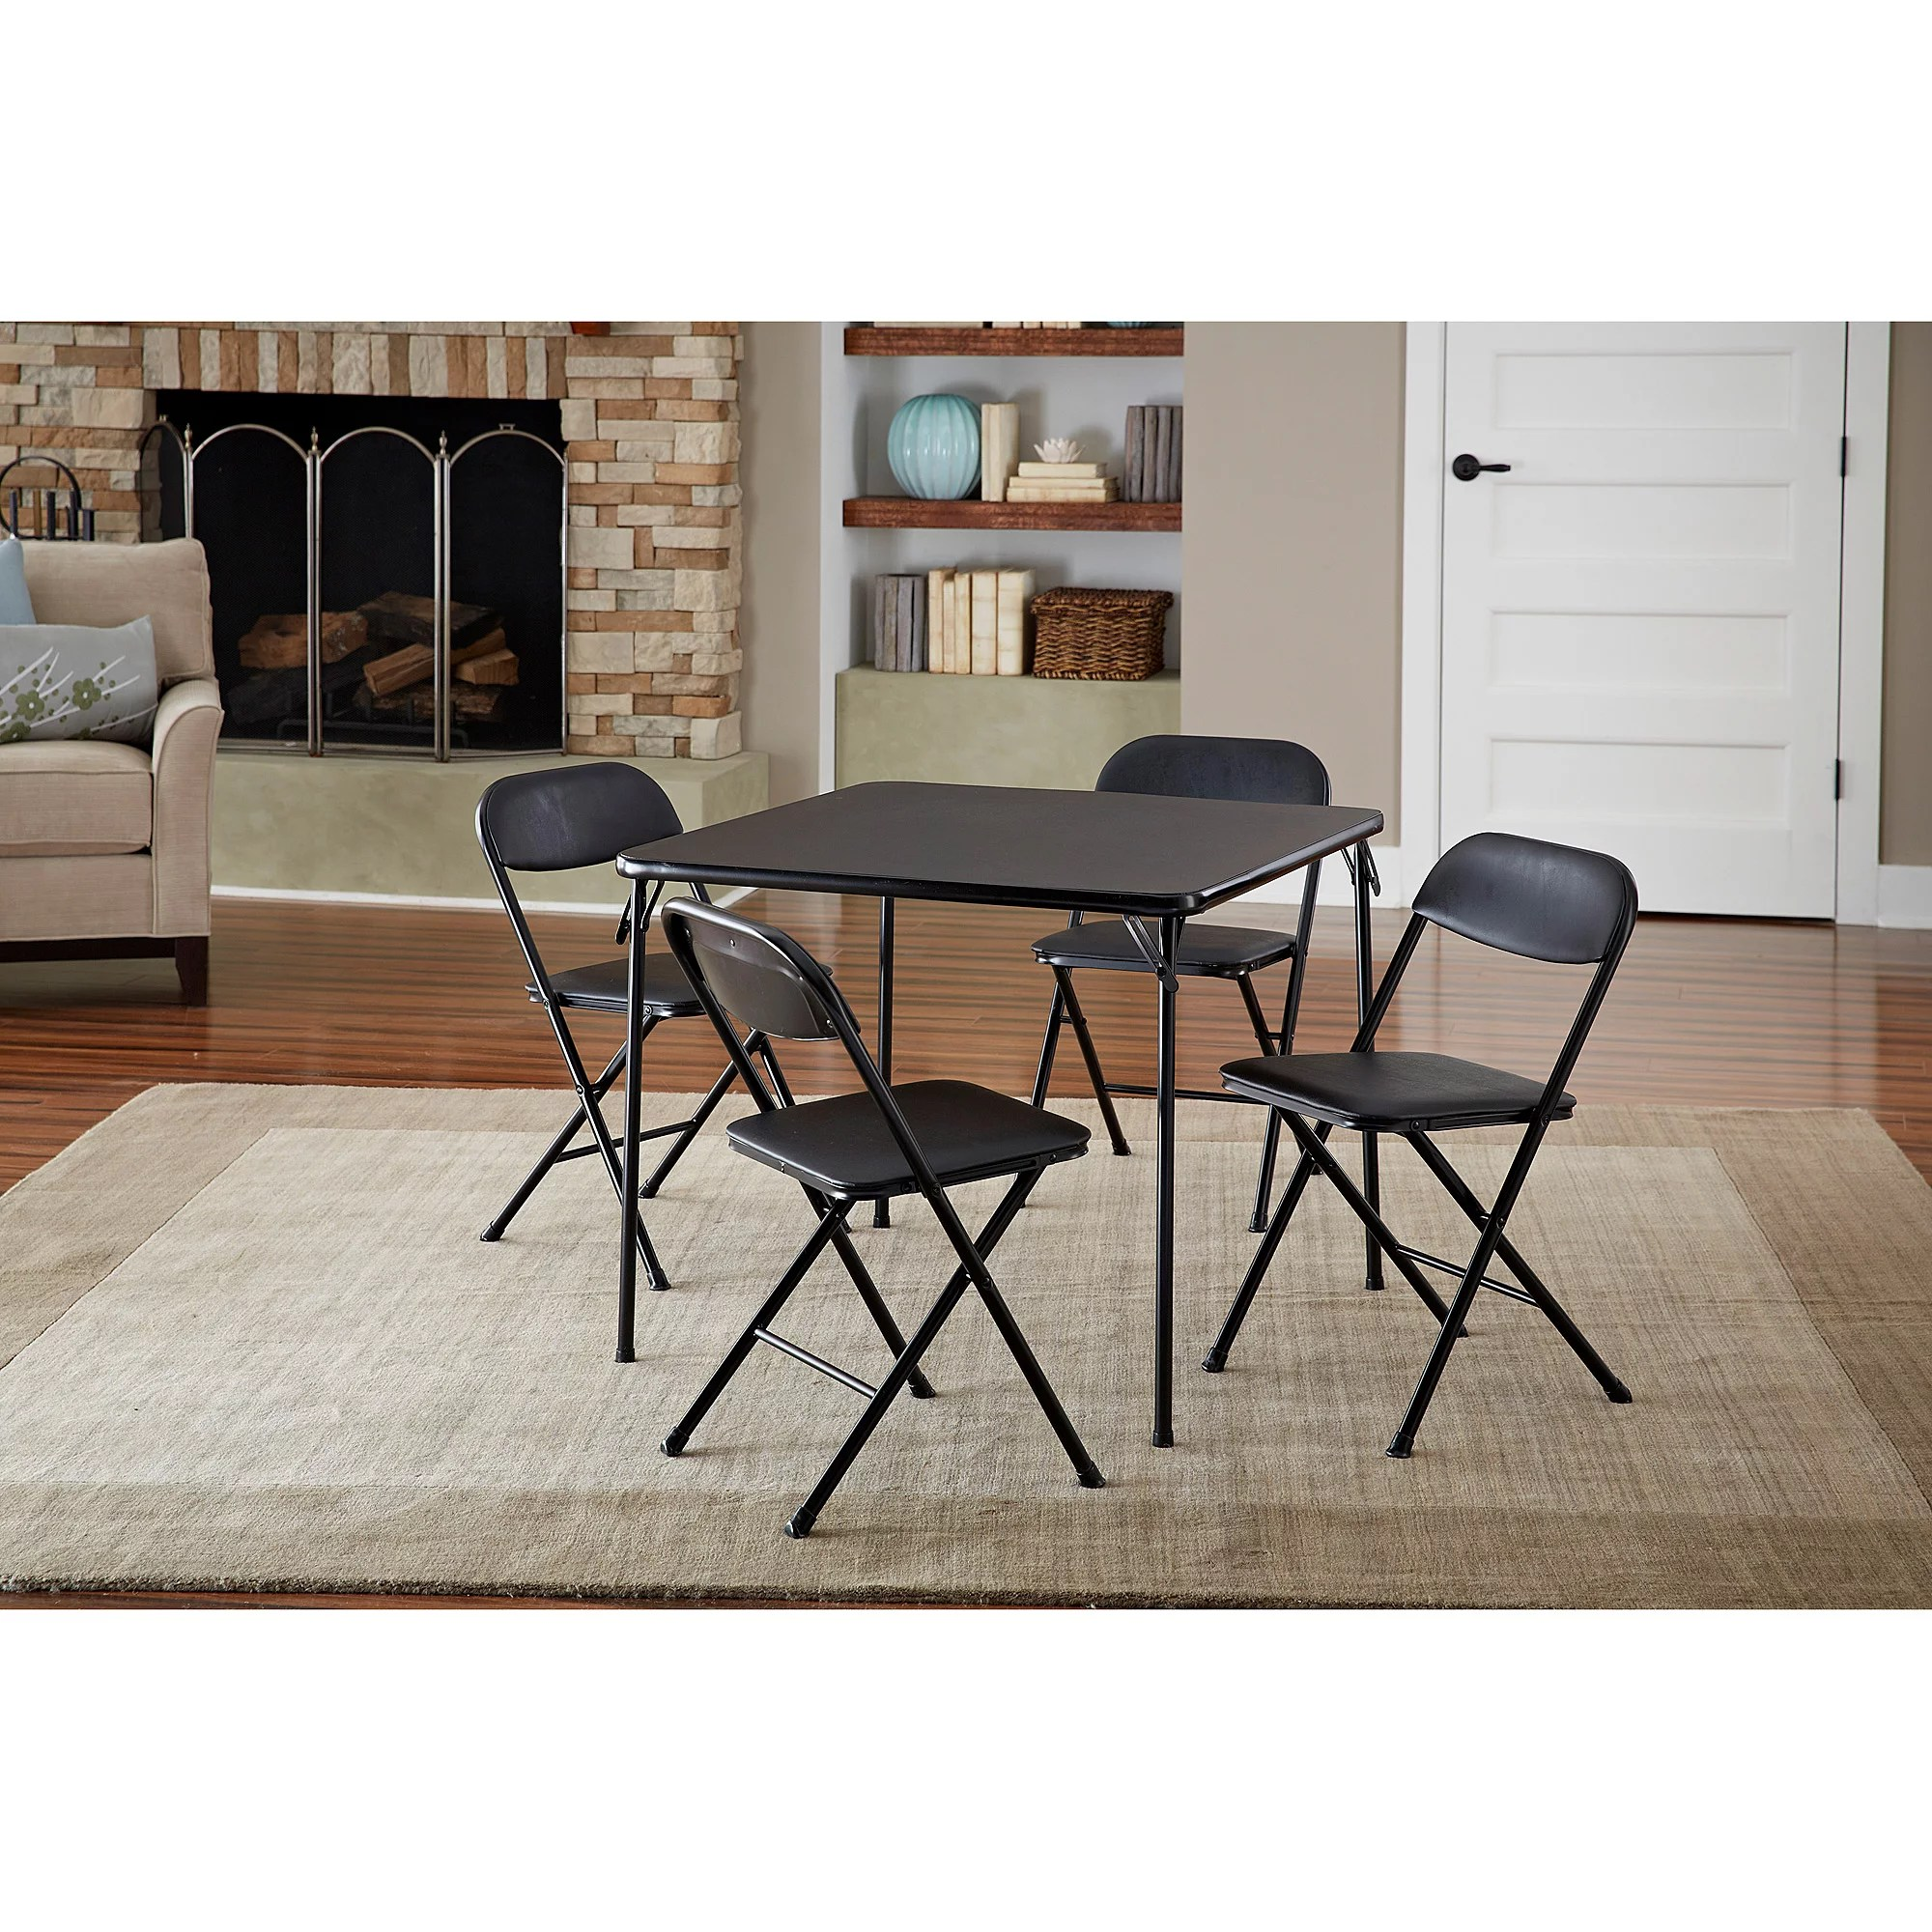 cosco card table and chairs dining room chair seat covers grey 5-piece set, black - walmart.com